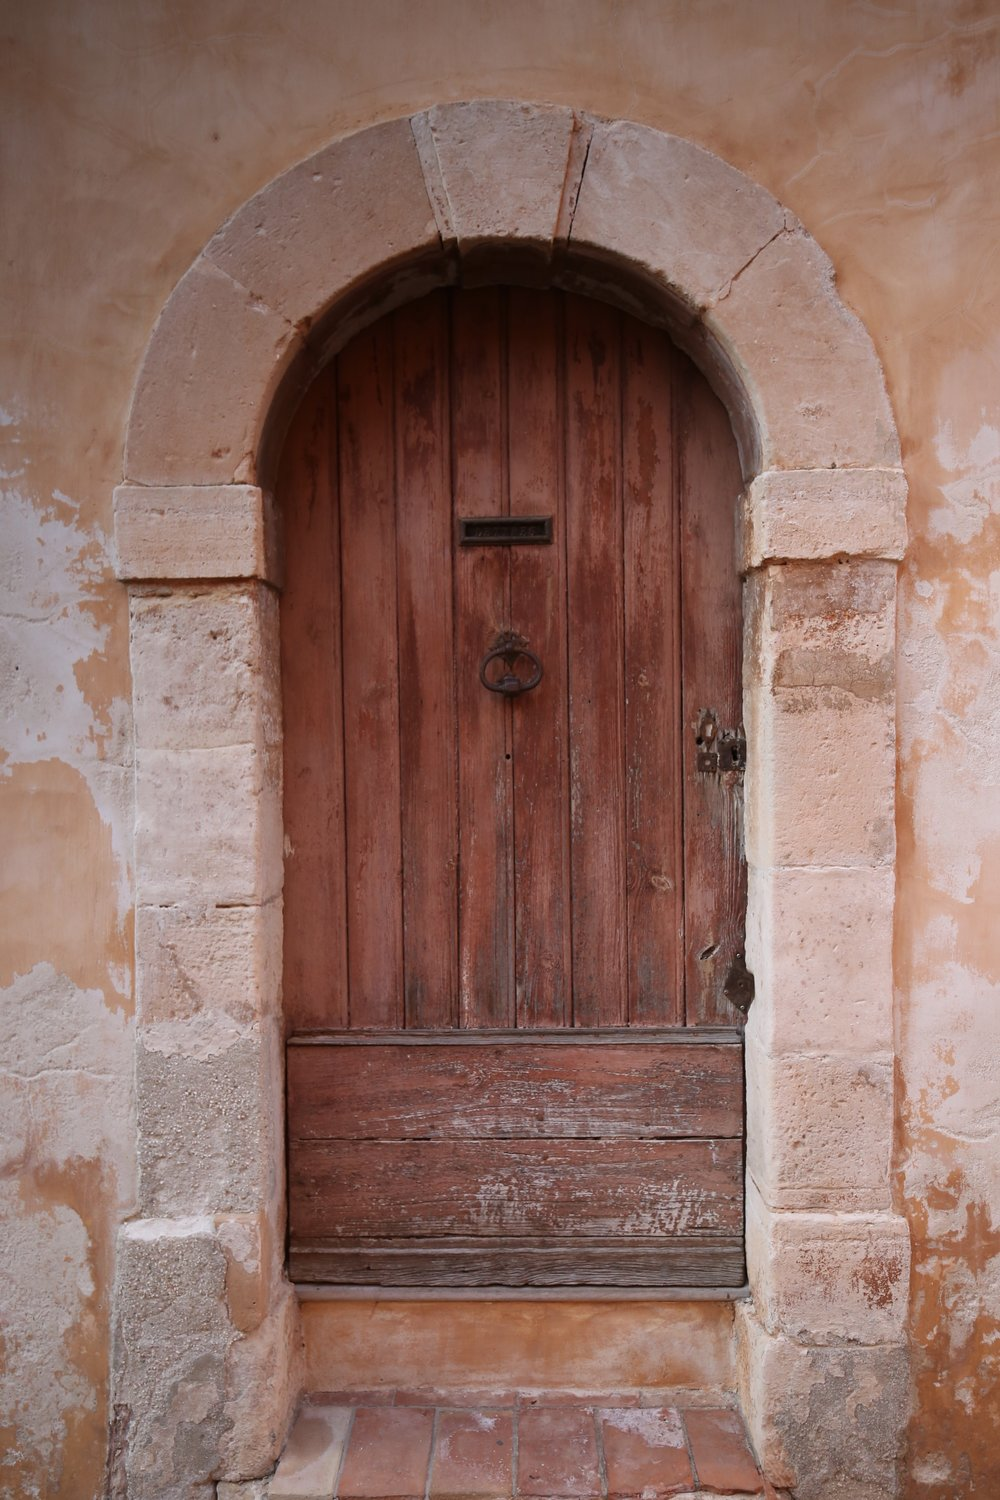 A wooden door in a pink stone wall.